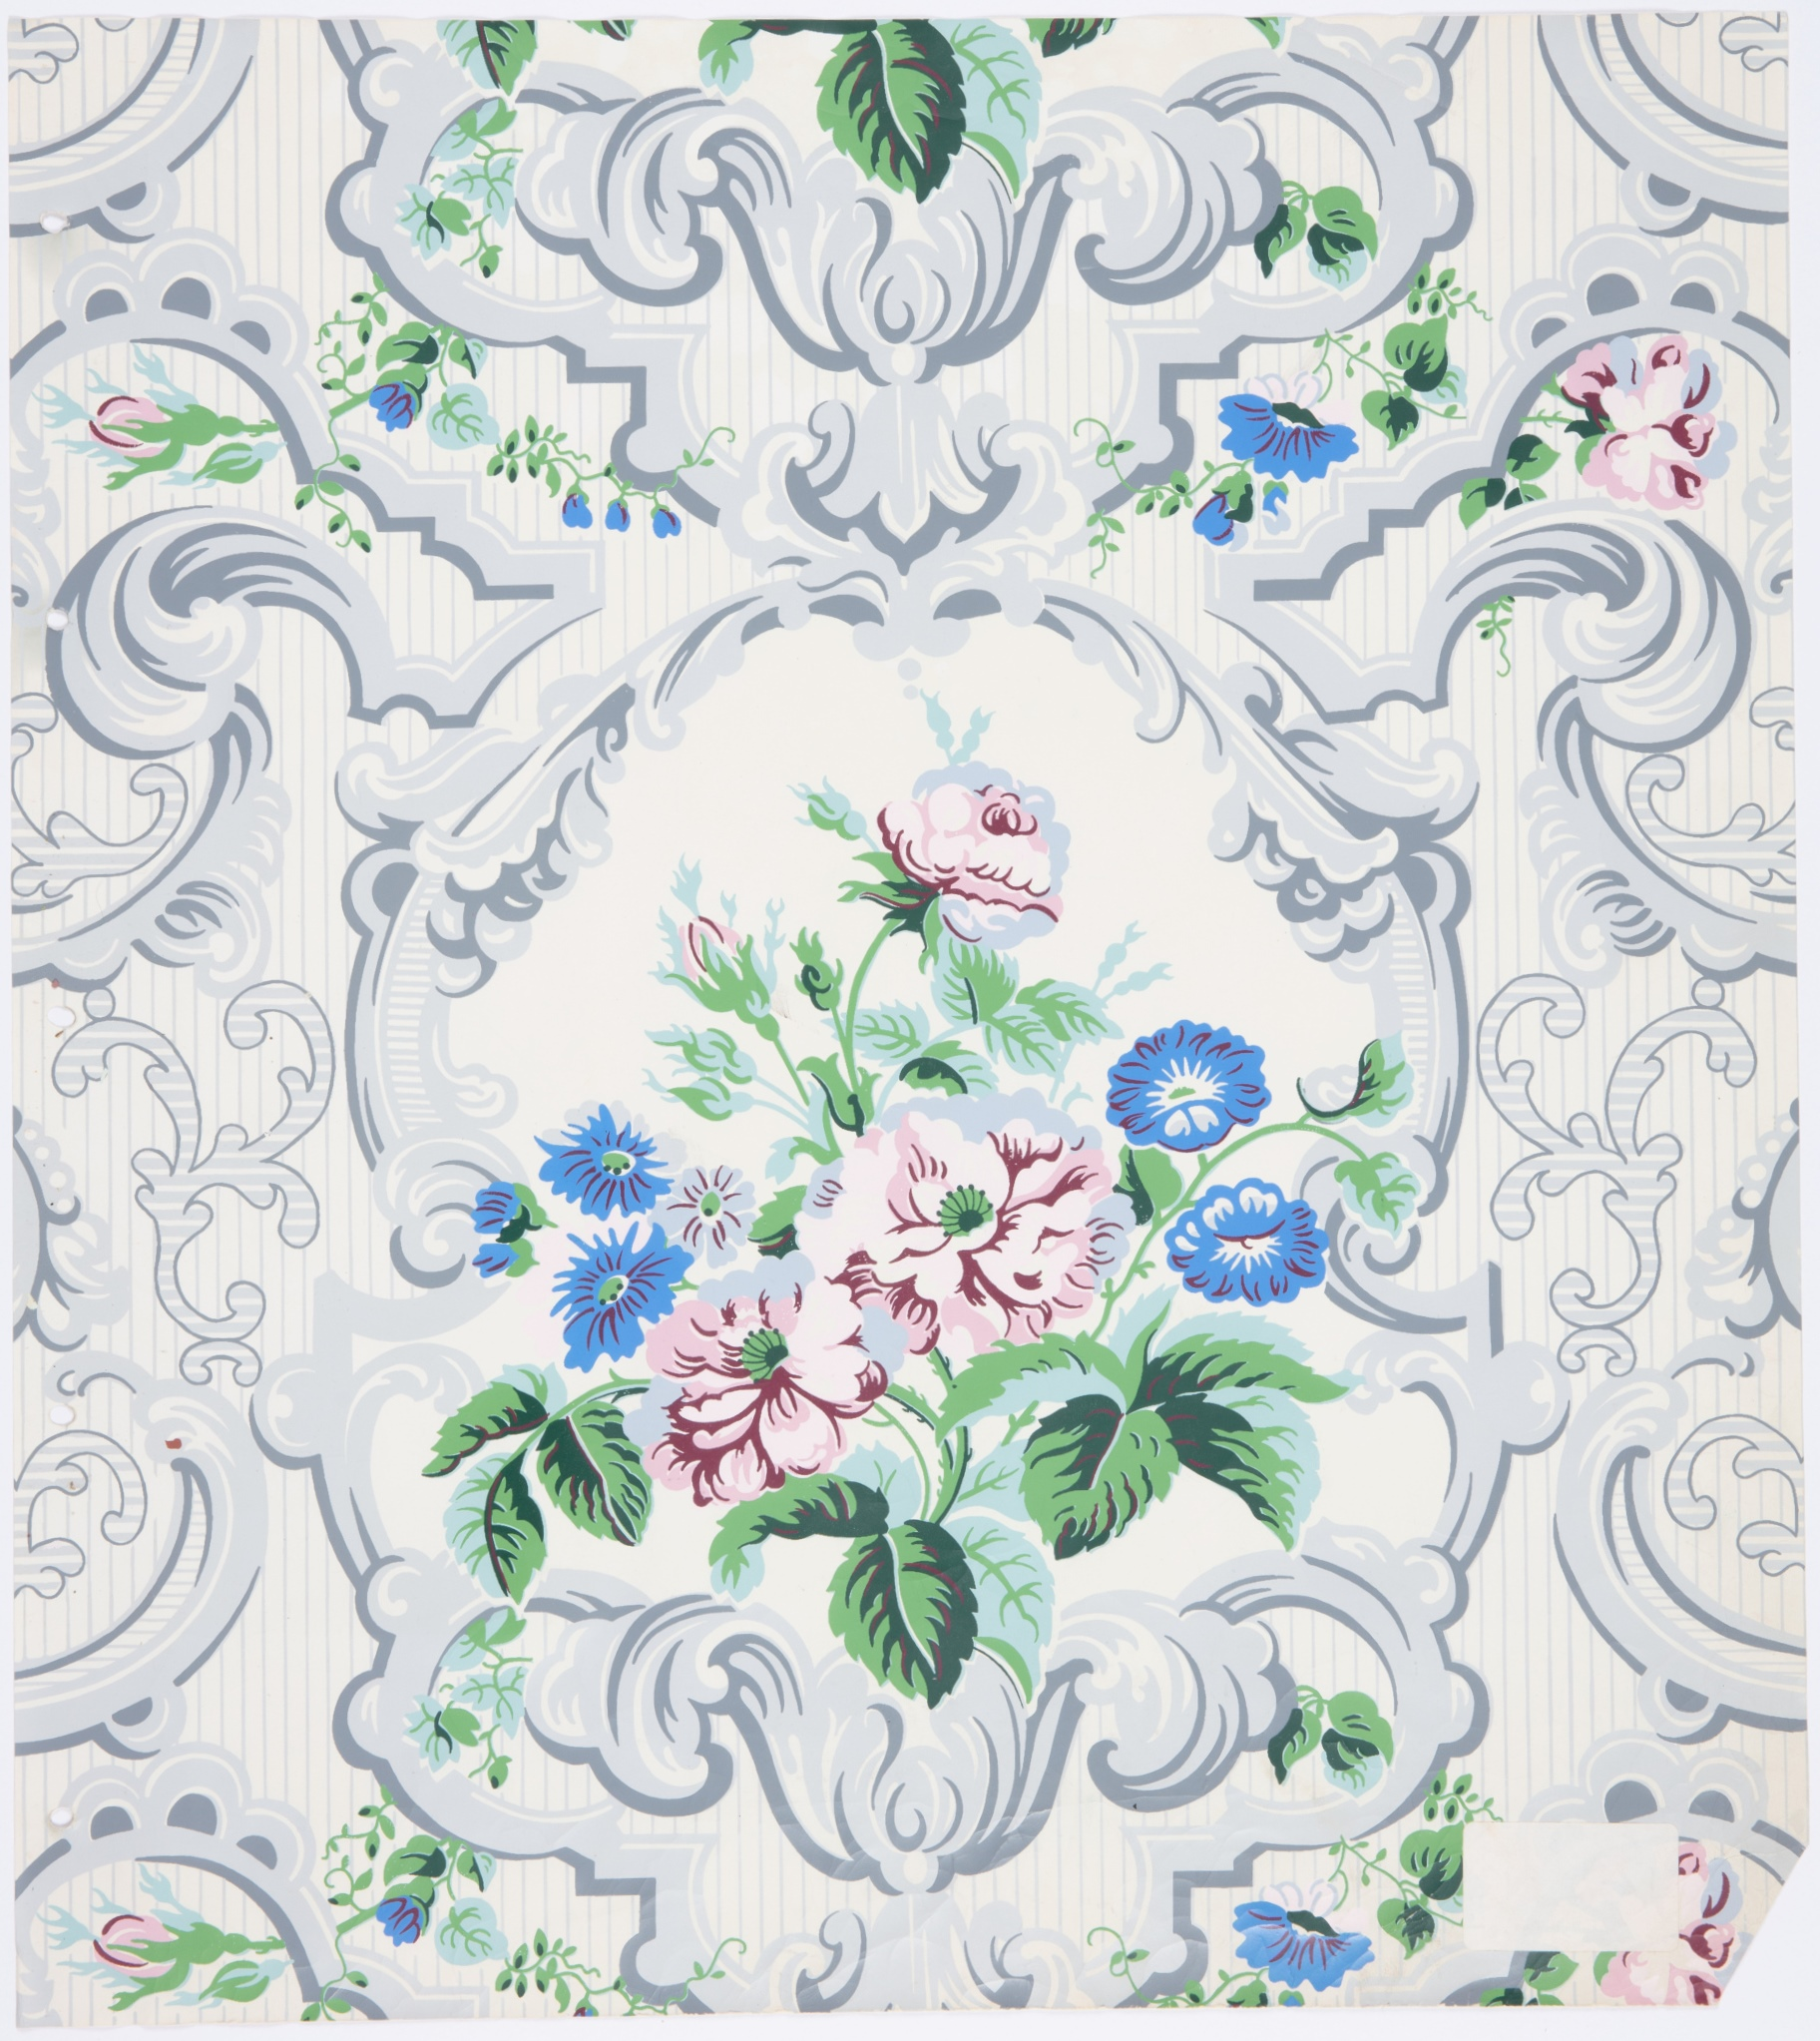 Wallpaper recreated for Mis Wentworth's room at Vaucluse House, Sydney, copied form paper found at Cooma Cottage